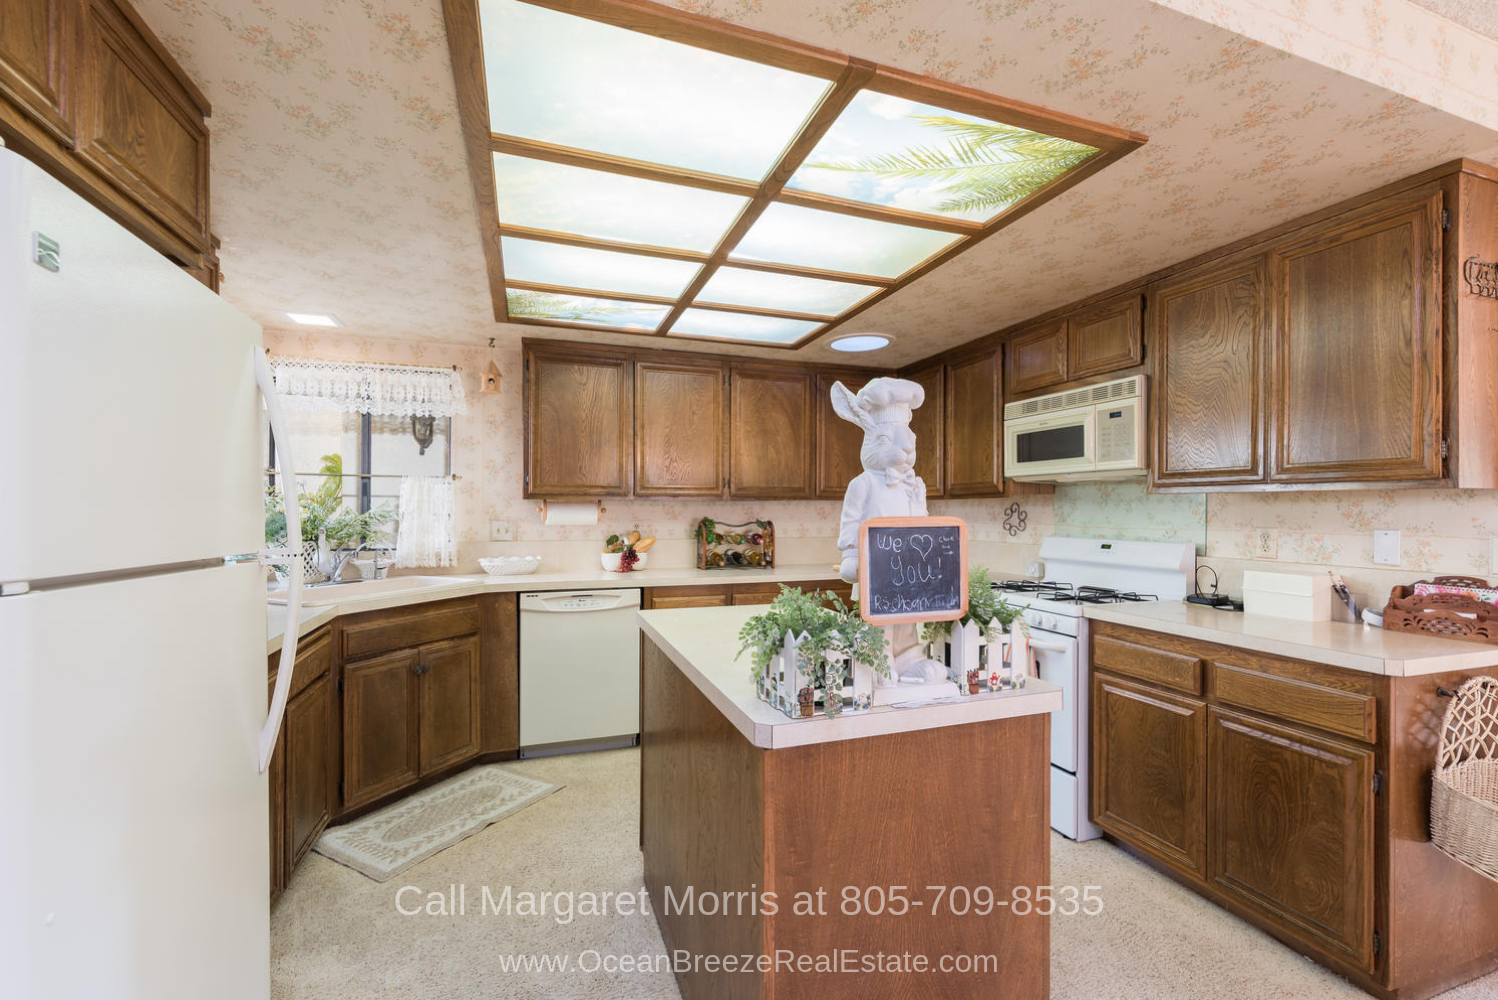 Golf Homes for Sale in Crown Pointe Subdivision Nipomo CA - Your inner chef is sure to shine in this Nipomo golf course home for sale.